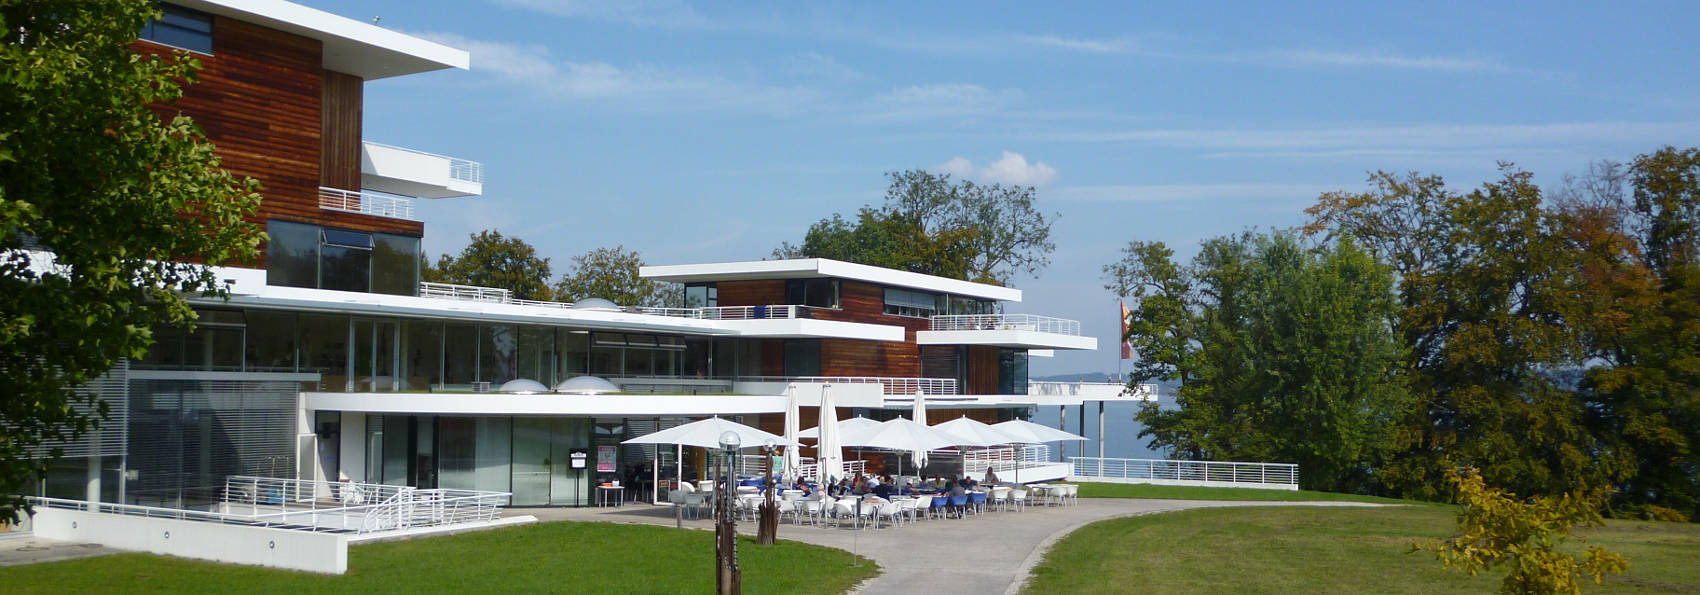 Hotel Bernried Am Starnberger See